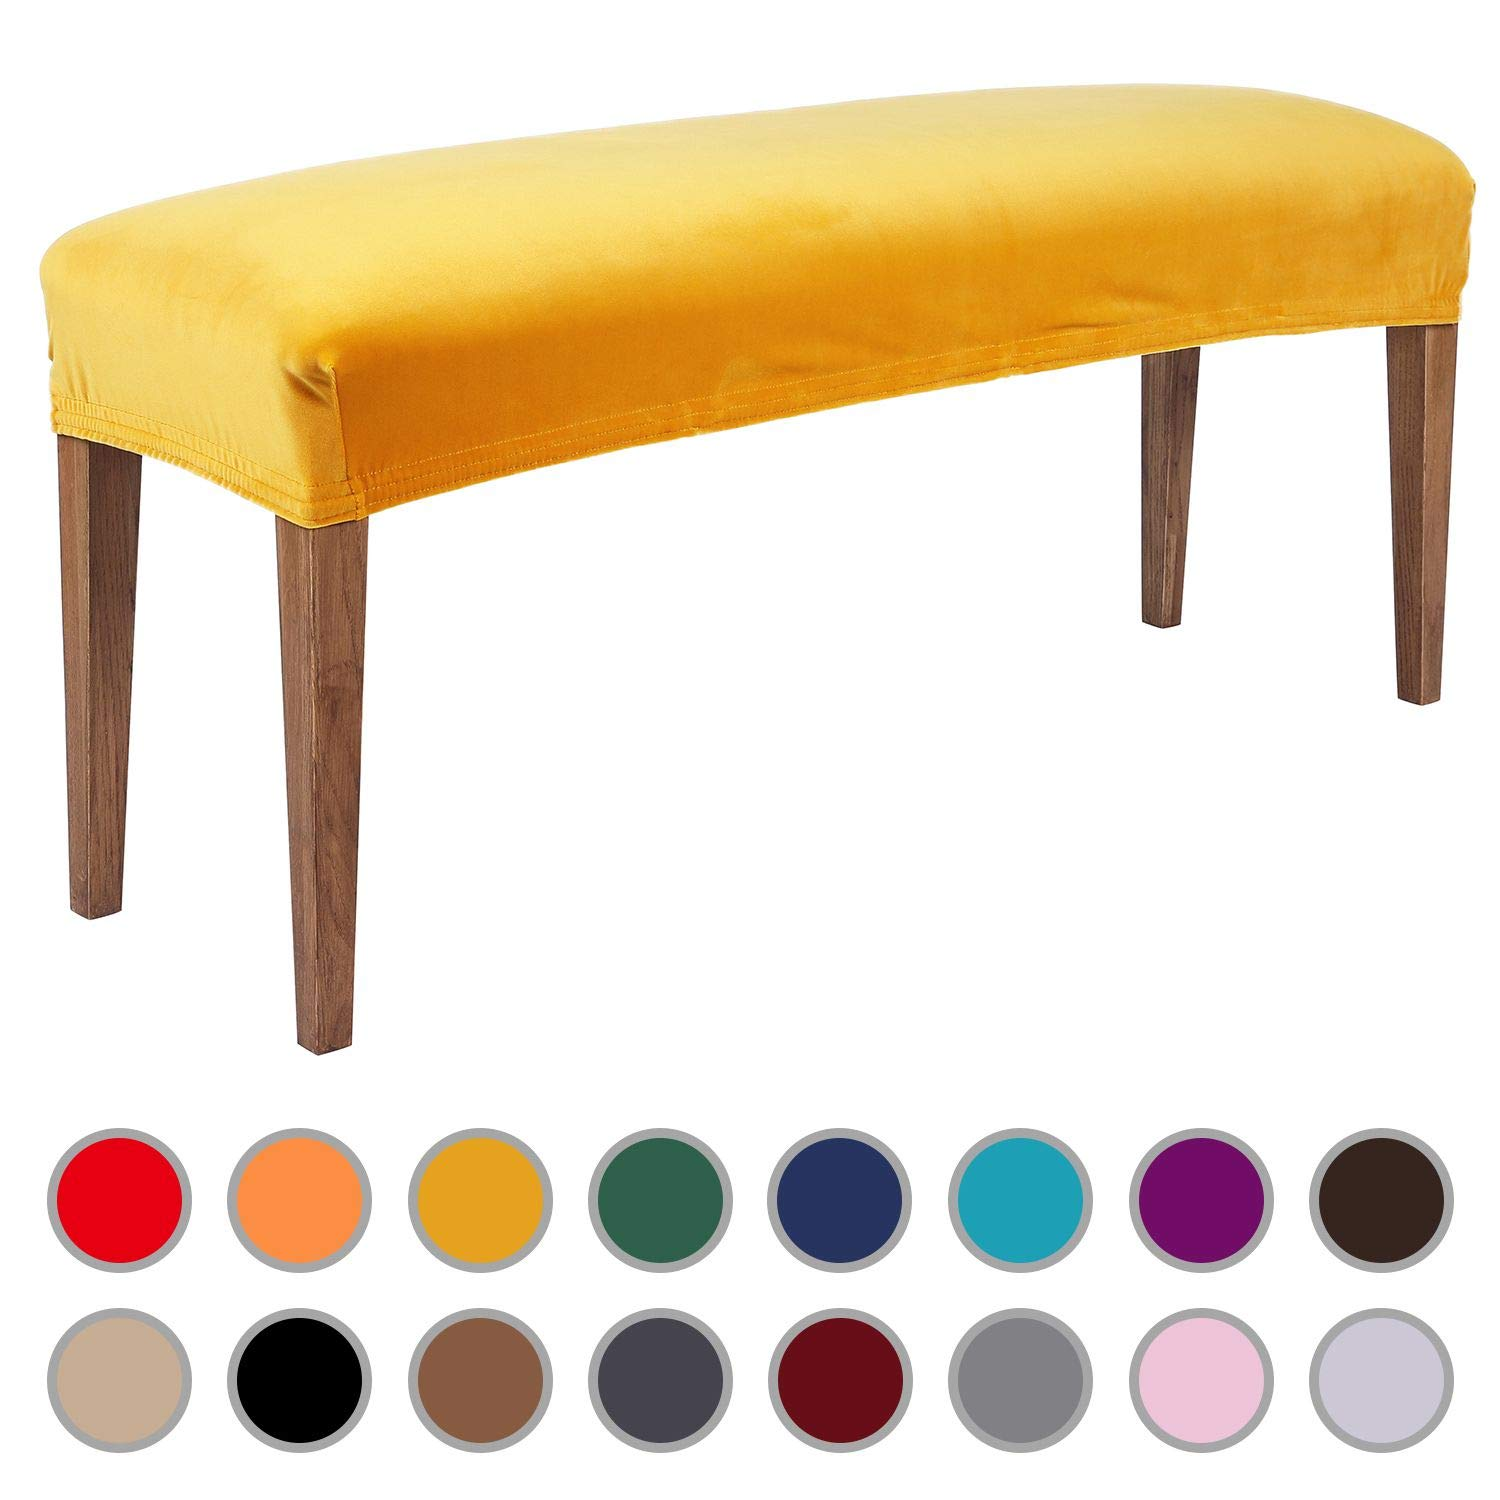 Colorxy Velvet Bench Covers for Dining Room - Stretch Spandex Upholstered Bench Slipcover Rectangle Removable Washable Bench Furniture Seat Protector for Living Room, Bedroom, Kitchen (Mustard Yellow)